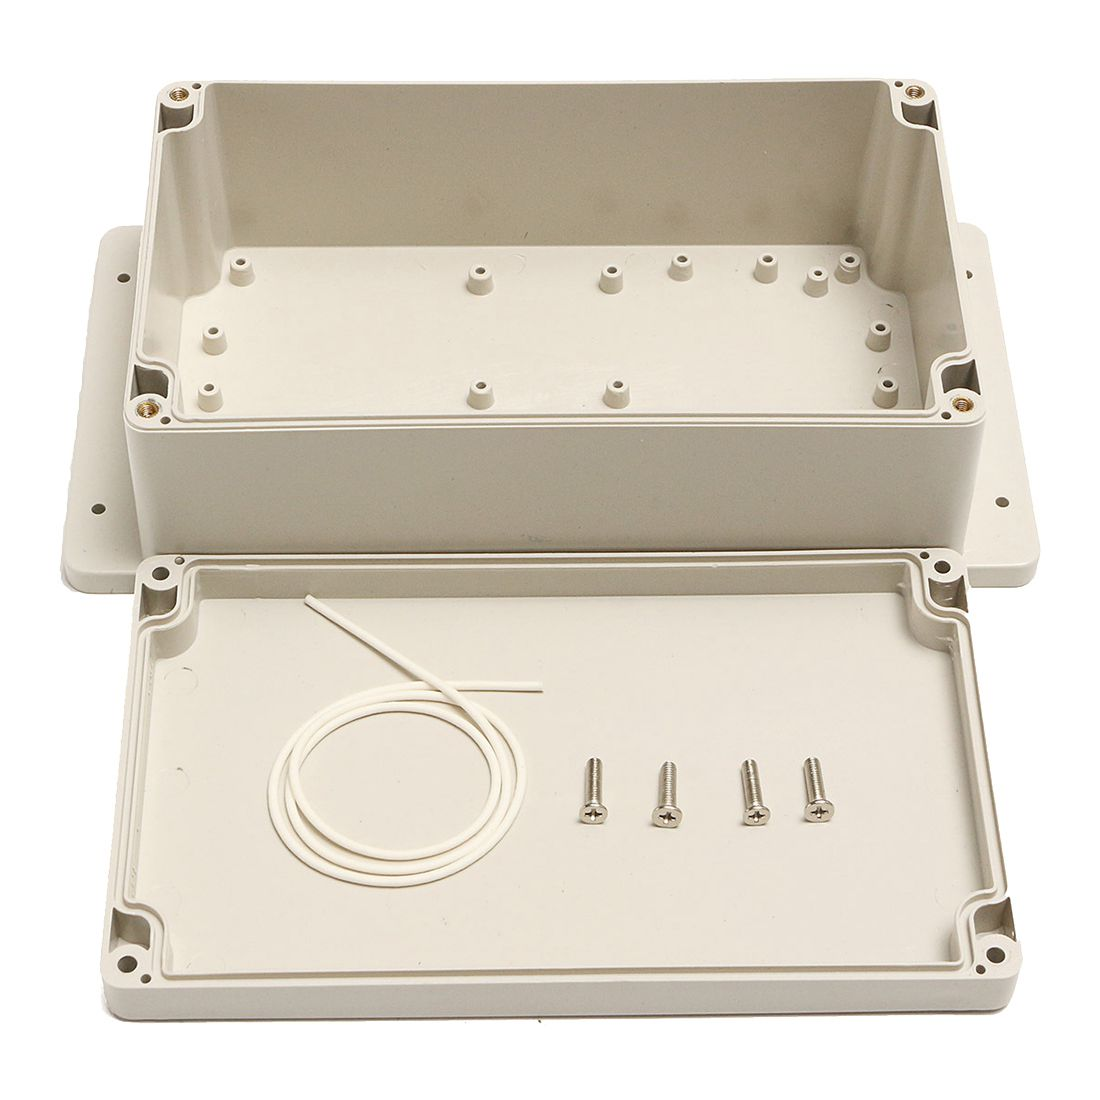 Waterproof Plastic ABS Electronic Project Box Enclosure Case 200x120x75MM White waterproof abs plastic electronic box white case 6 size